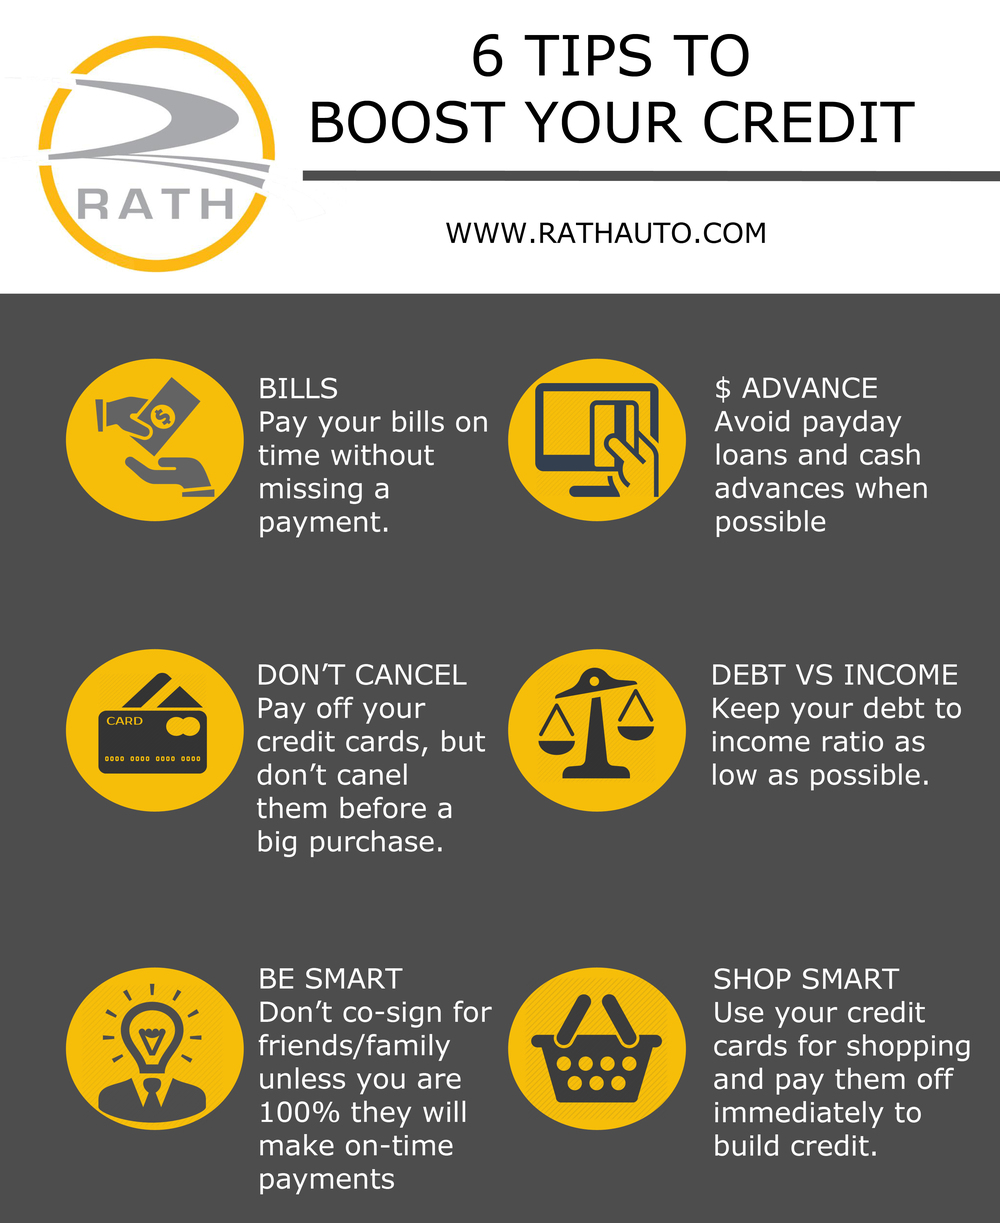 6 TIPS FOR BOOSTING YOUR CREDIT SCORE